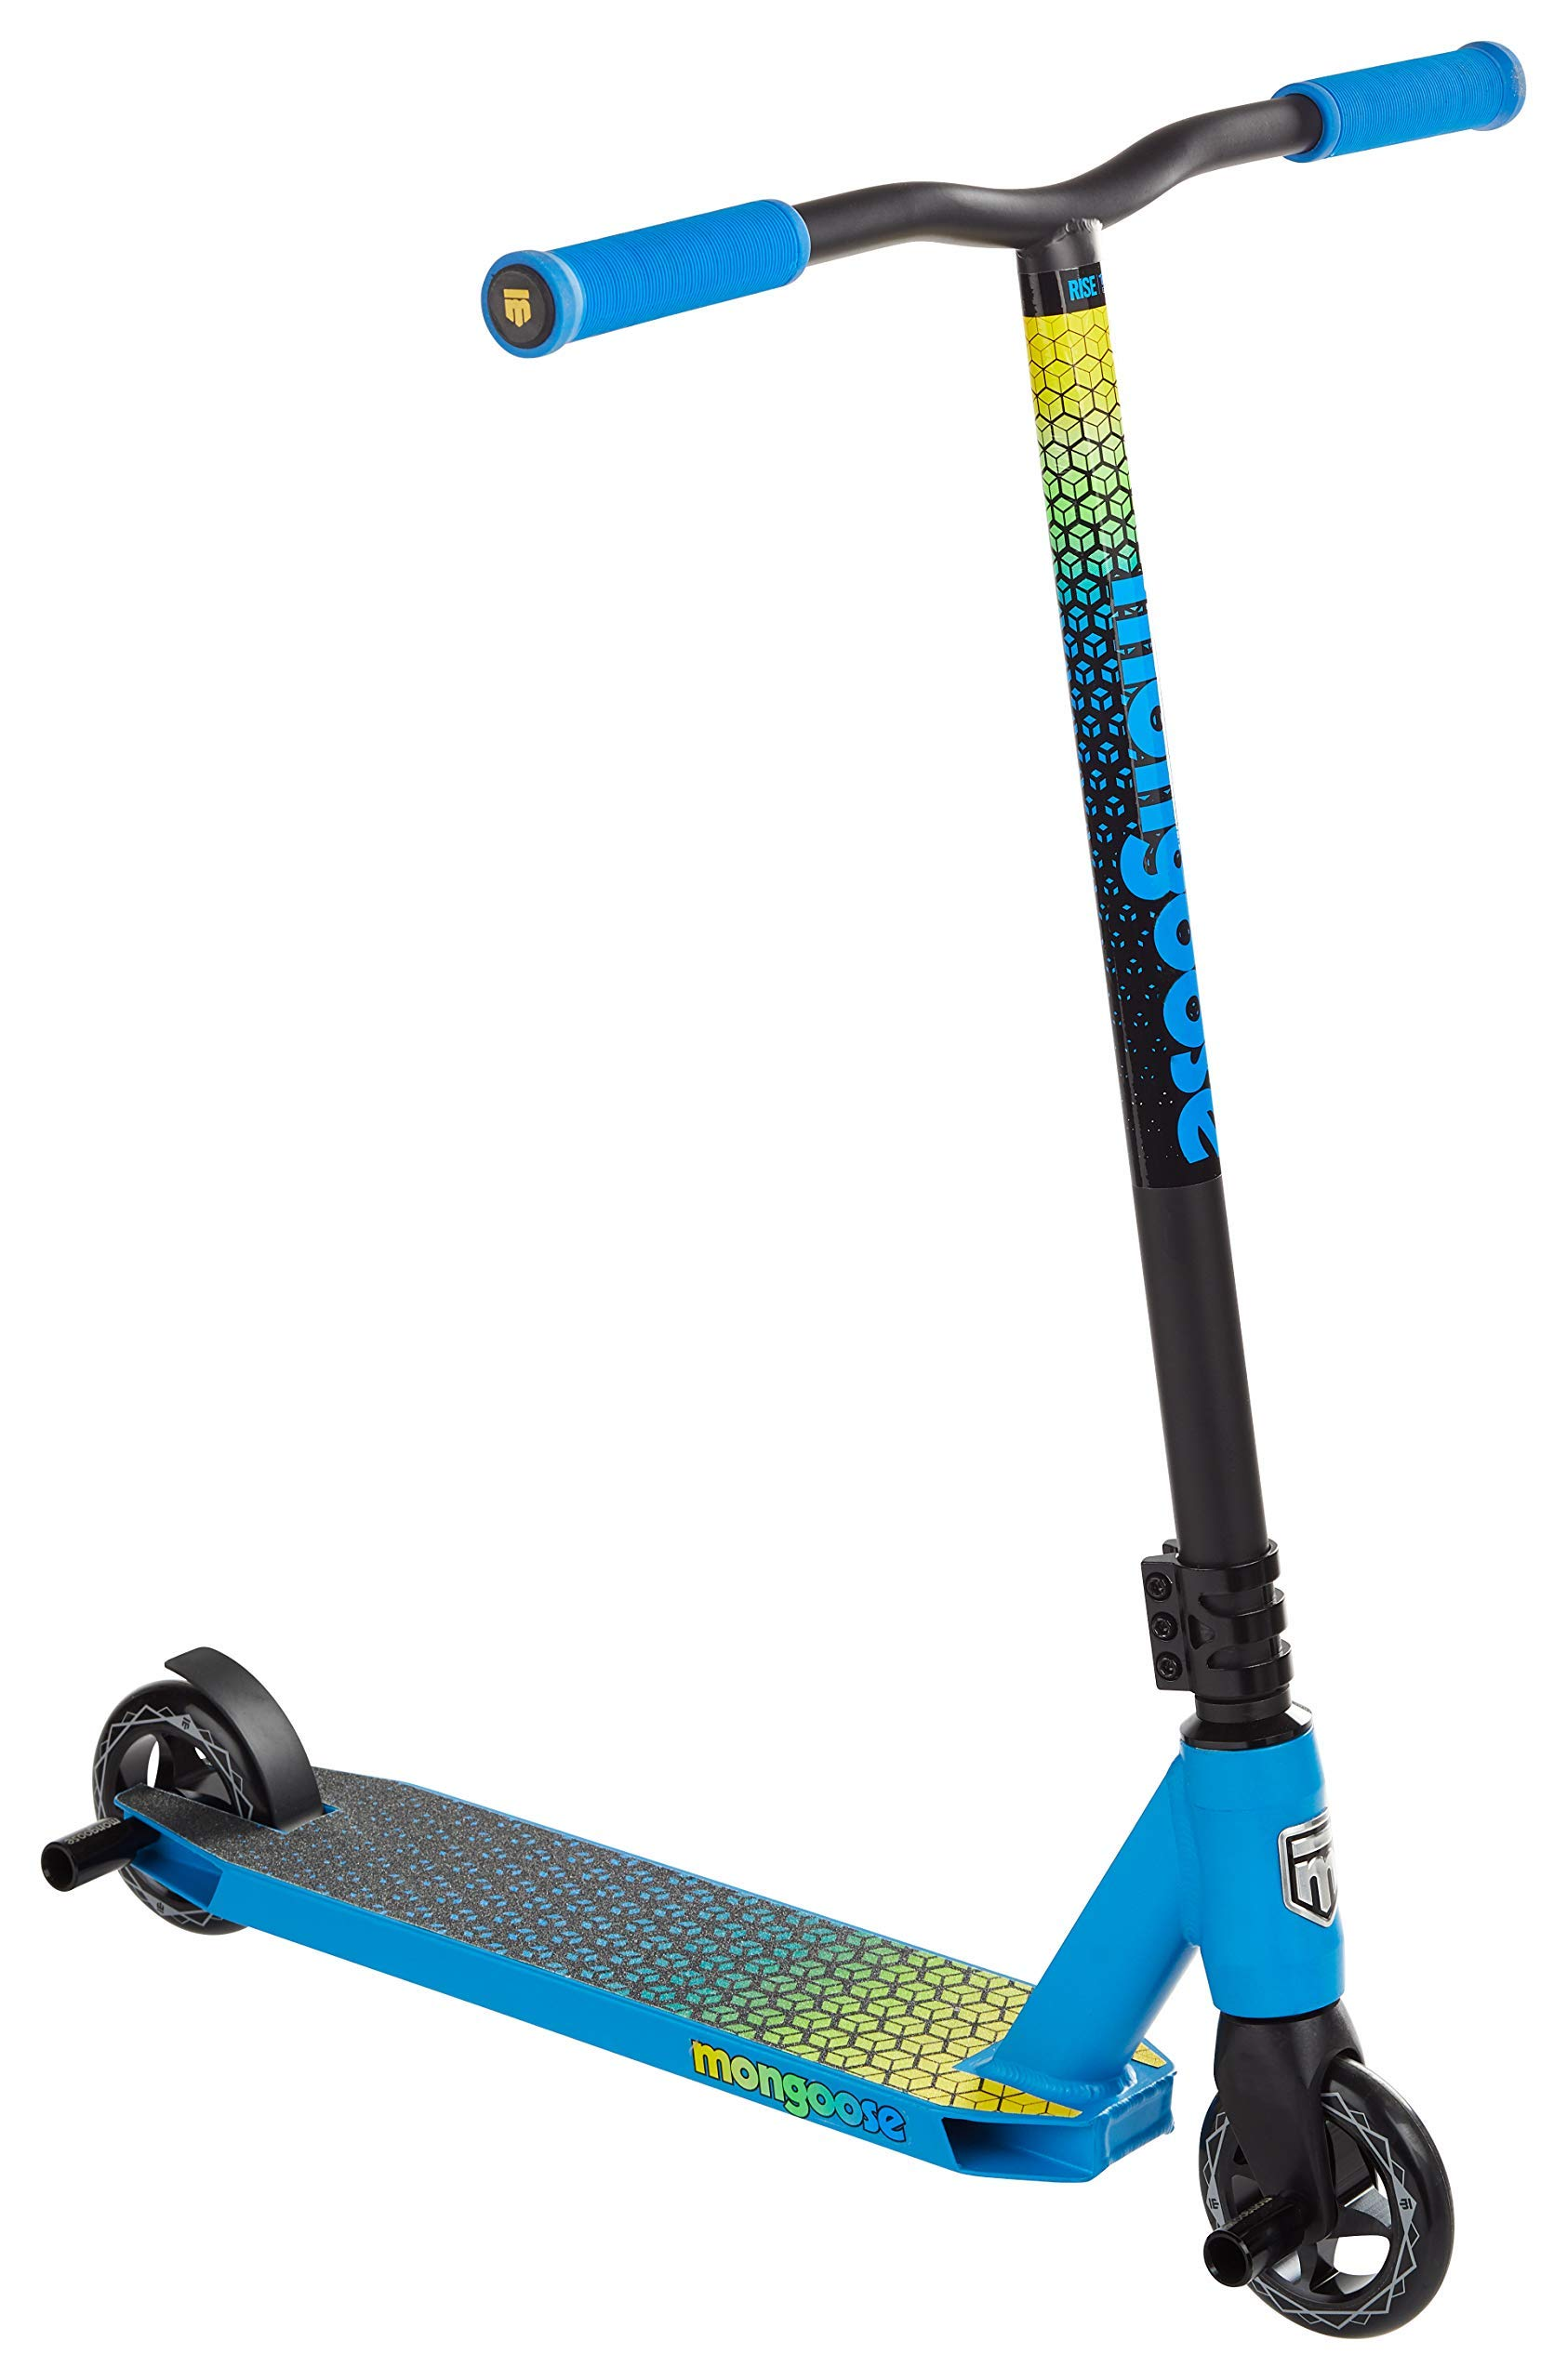 Mongoose Rise 100 Elite Freestyle Stunt Kick Scooter, Lightweight Alloy Deck with Full-Coverage Max Grip and Bike-Style Handlebars, Wheel Pegs Included, 110mm Alloy Wheels, Blue/Yellow (Renewed) by Mongoose